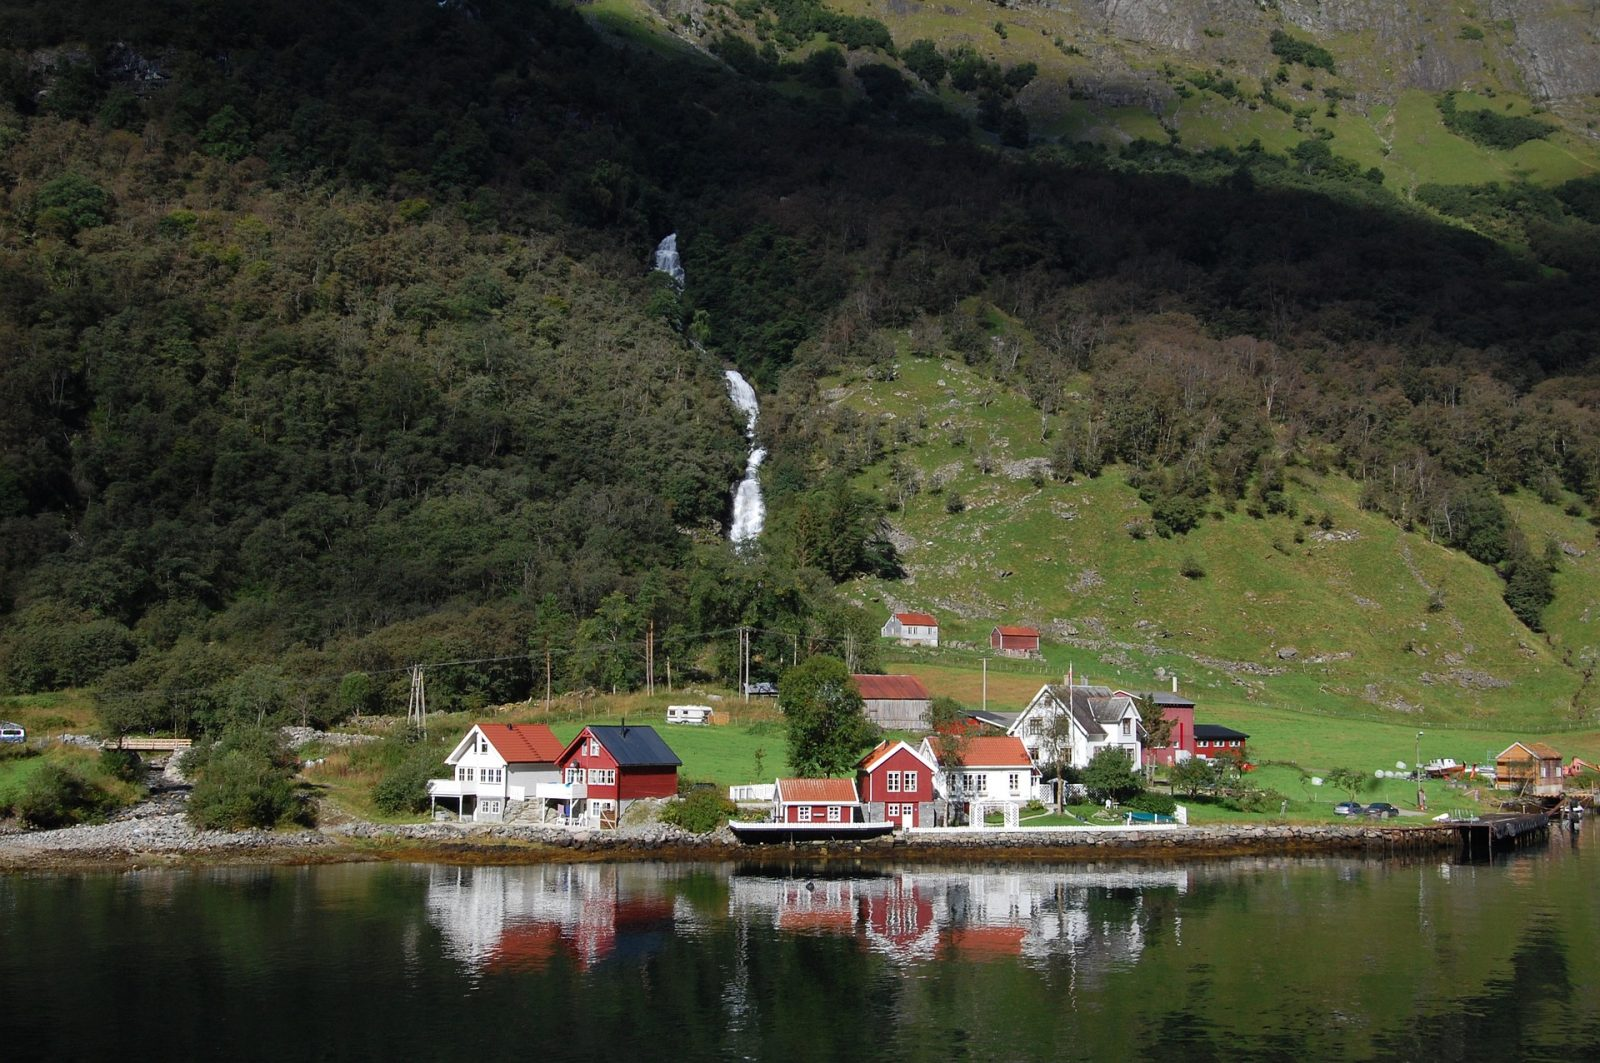 Flåm railway tour in Norway